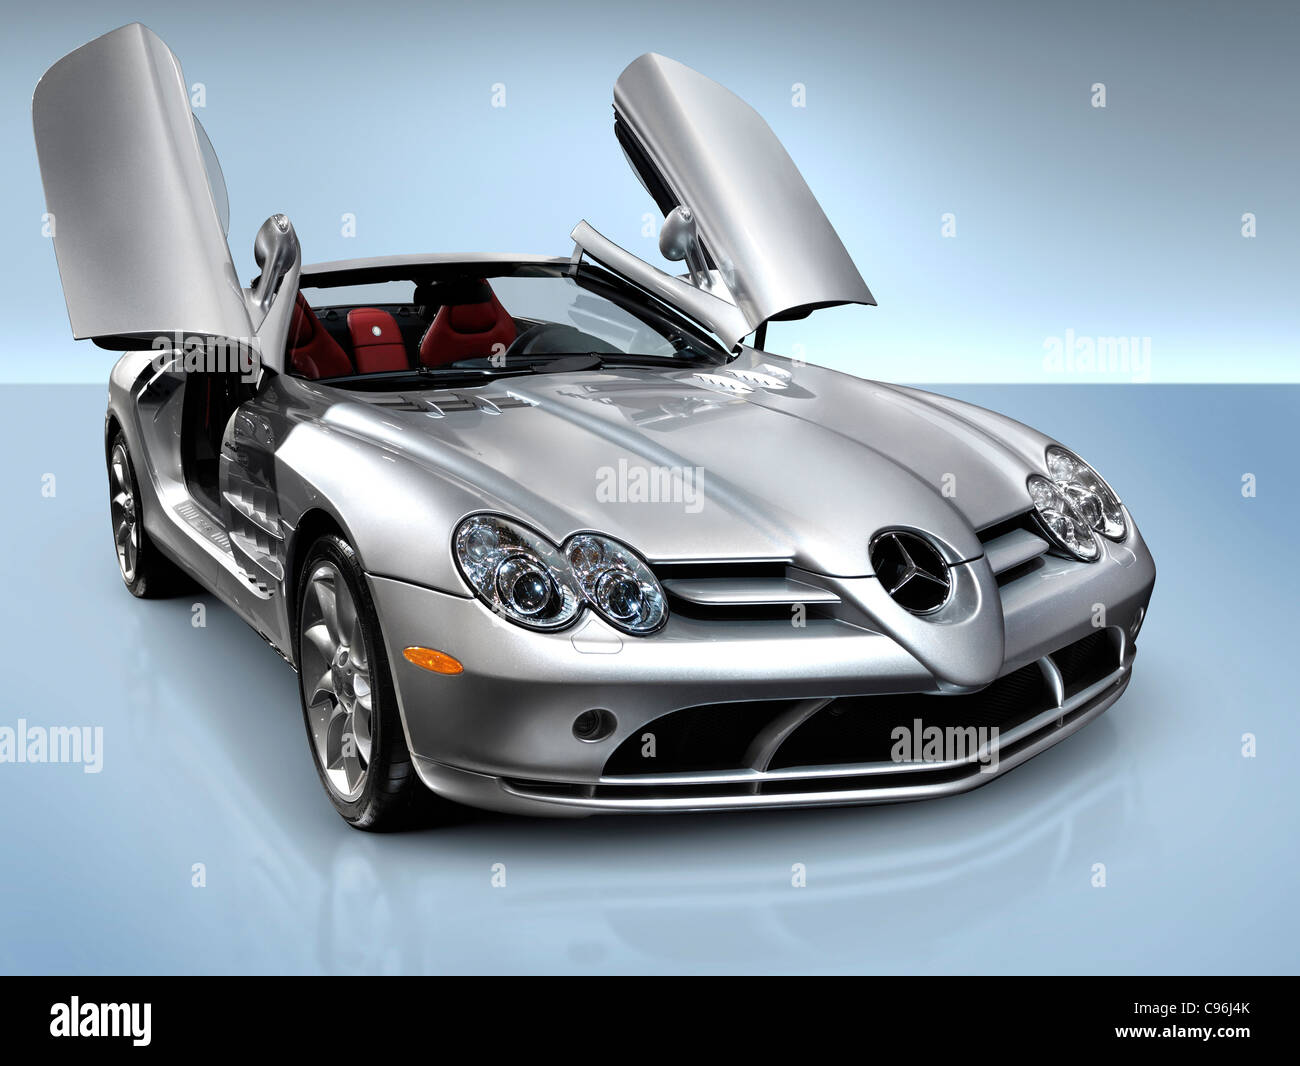 Mercedes benz slr mclaren roadster anglo german sports car for Benz sport katalog